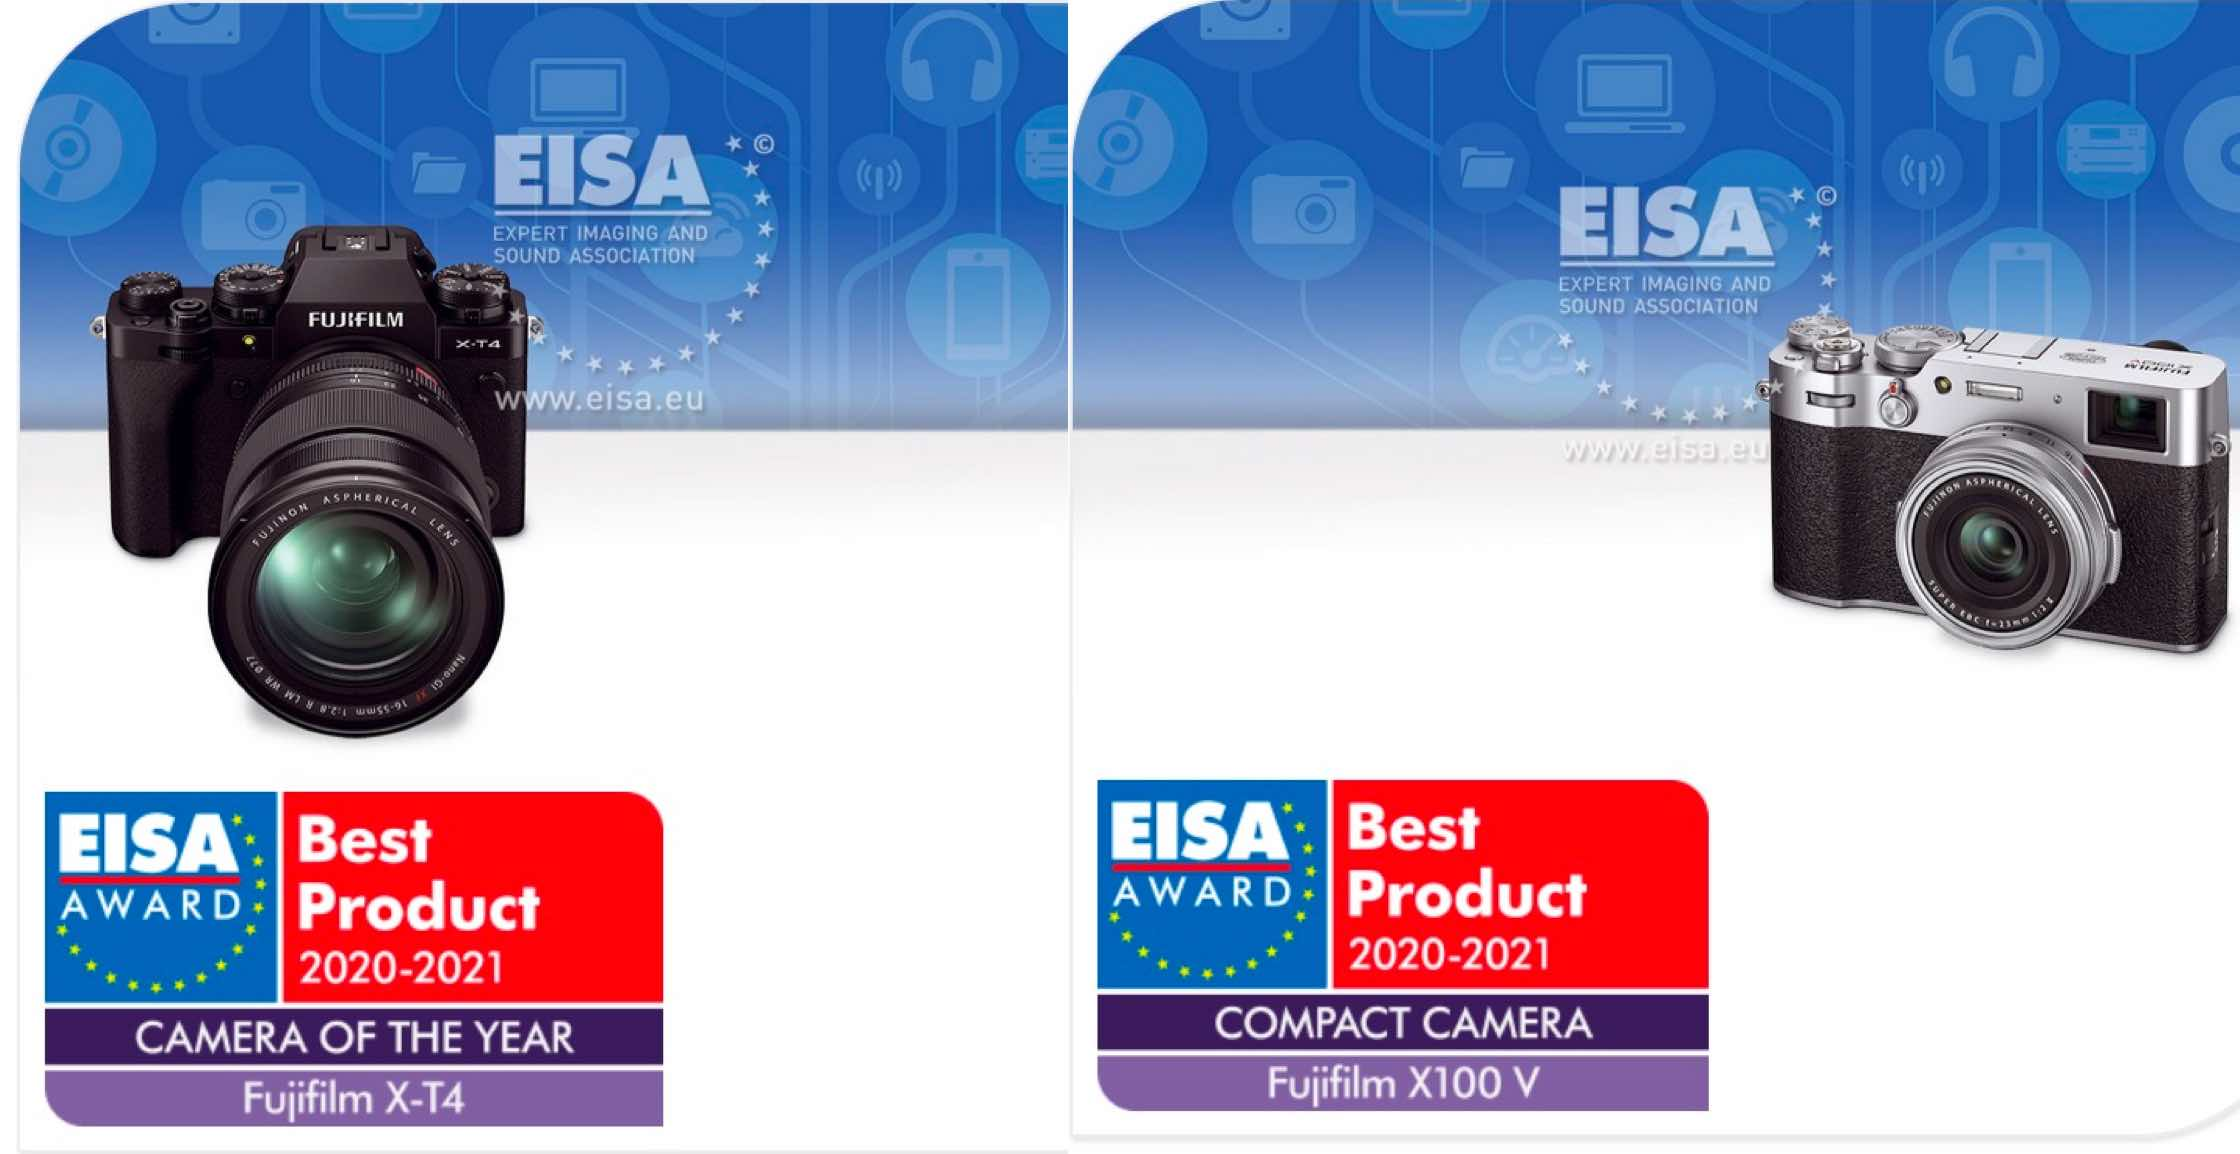 Best Compact Cameras 2021 EISA Awards: Fujifilm X T4 Best Camera of the Year and X100V Best